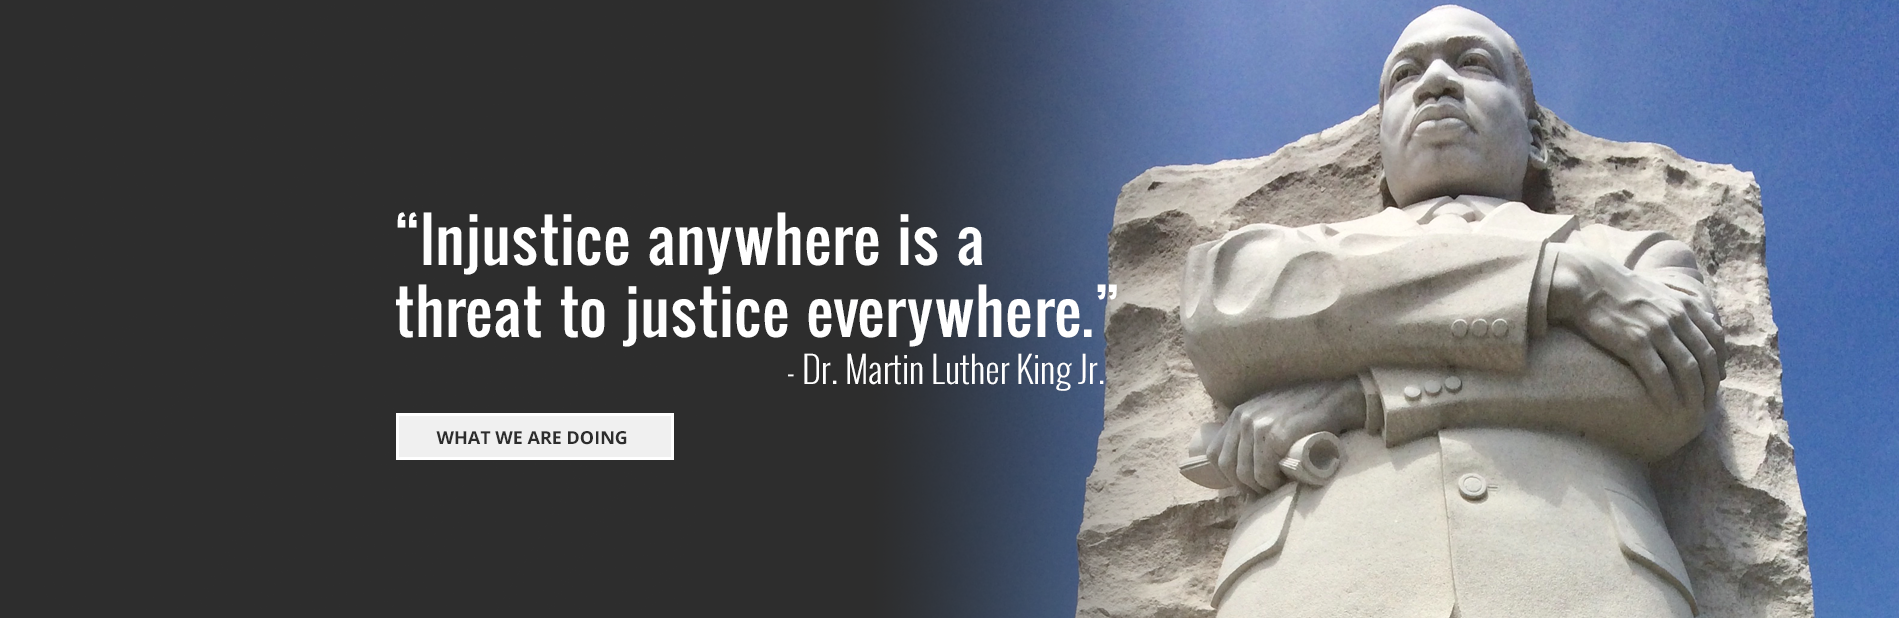 "A photo of the Dr. King memorial with a quote overlaid: ""Injustice anywhere is a threat to justice everywhere."" - Dr. Martin Luther King Jr.  Follow the link to learn more about what we are doing."